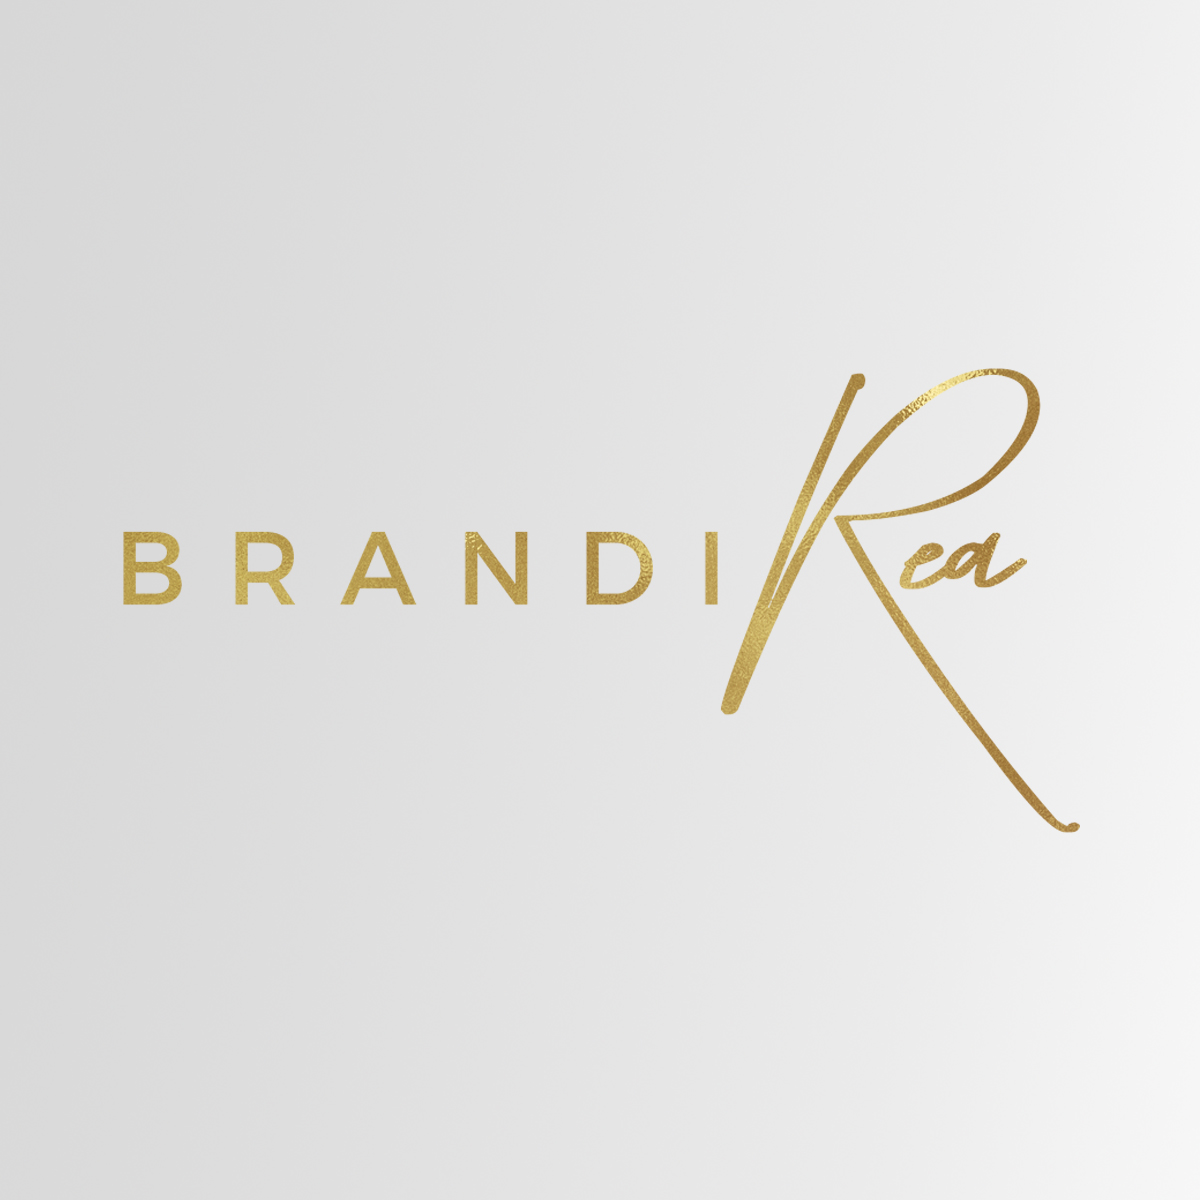 branding - creative - agency - logo design - community -marketing - web design - social media - brandi rea - health blog - fitness blog - blog design - blog brand